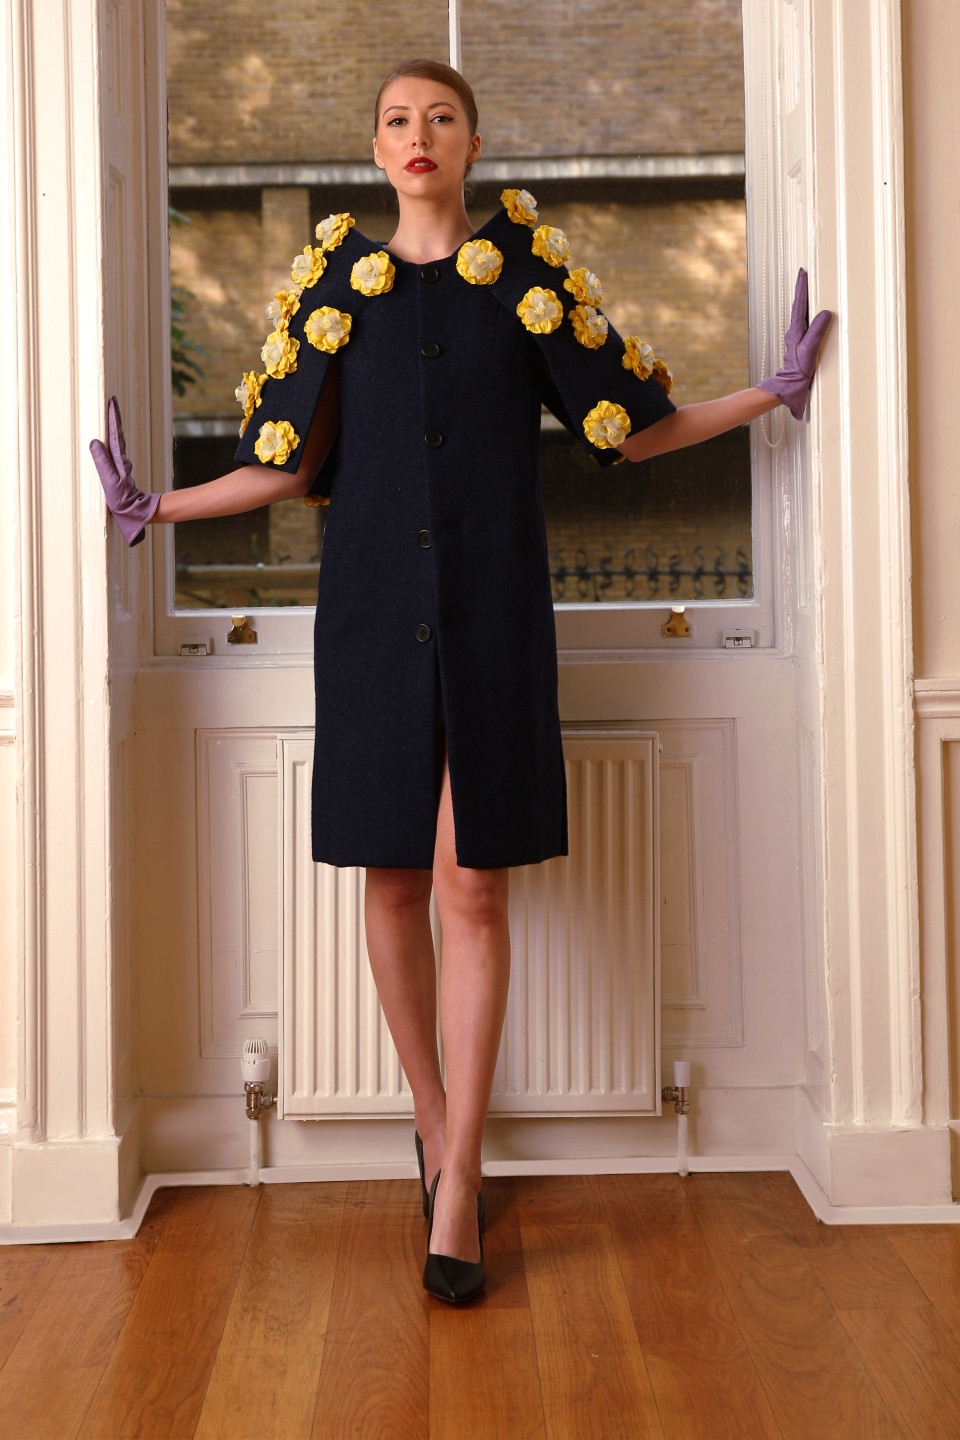 Blue tweed dress coat with yellow applique flowers - opera outfit couture design angelo fair